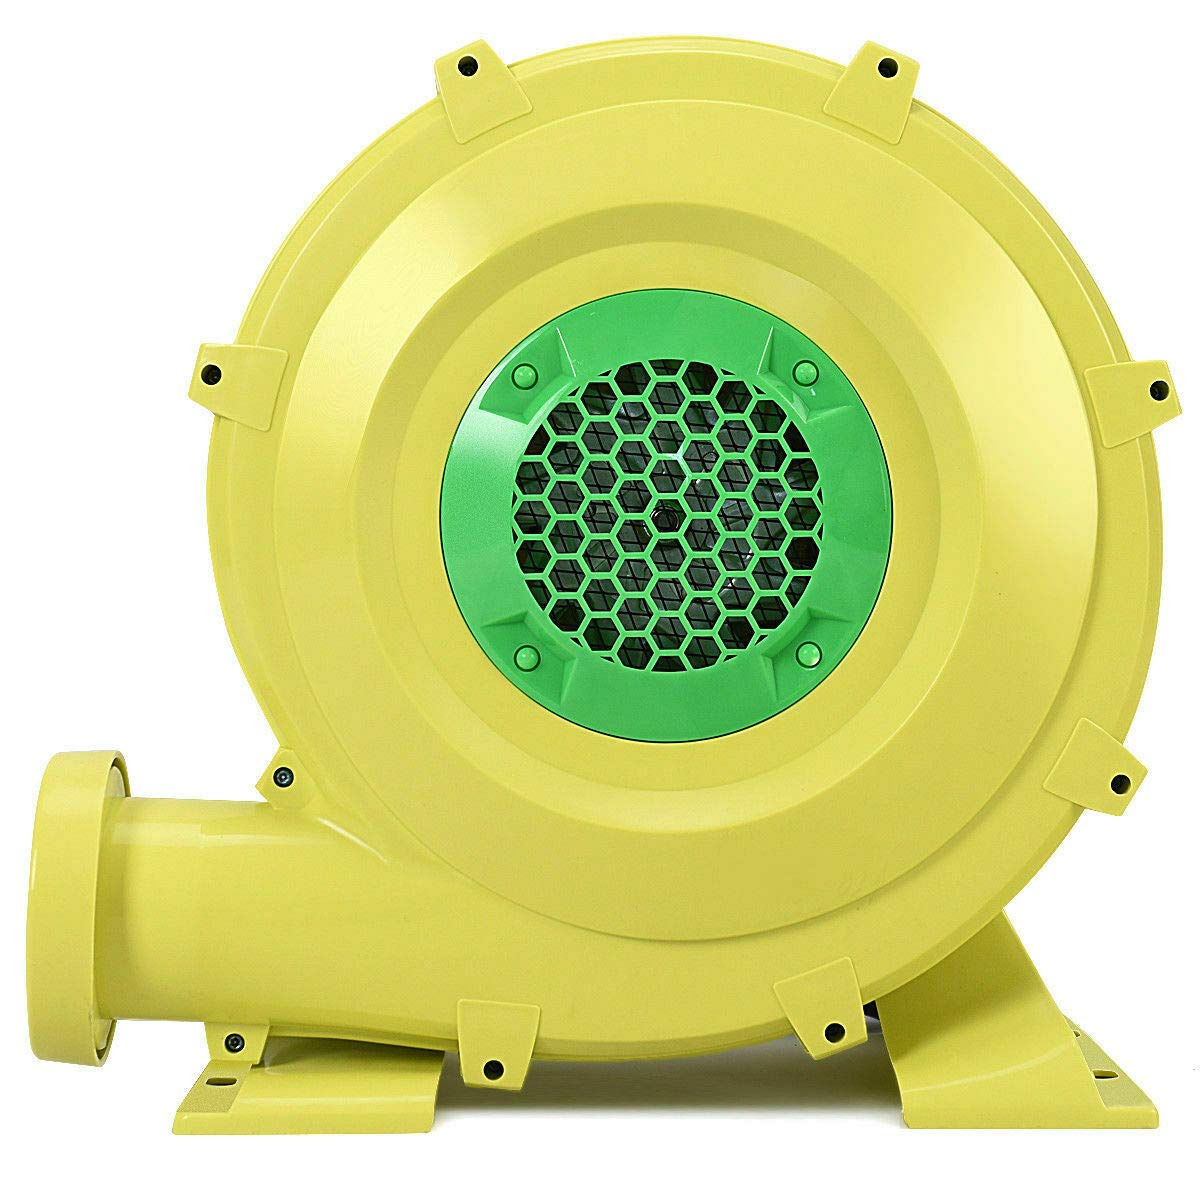 Stone Banks 750 Watt 1HP Air Blower Pump Fan for Inflatable Bounce House Bouncy Castle by Stone Banks